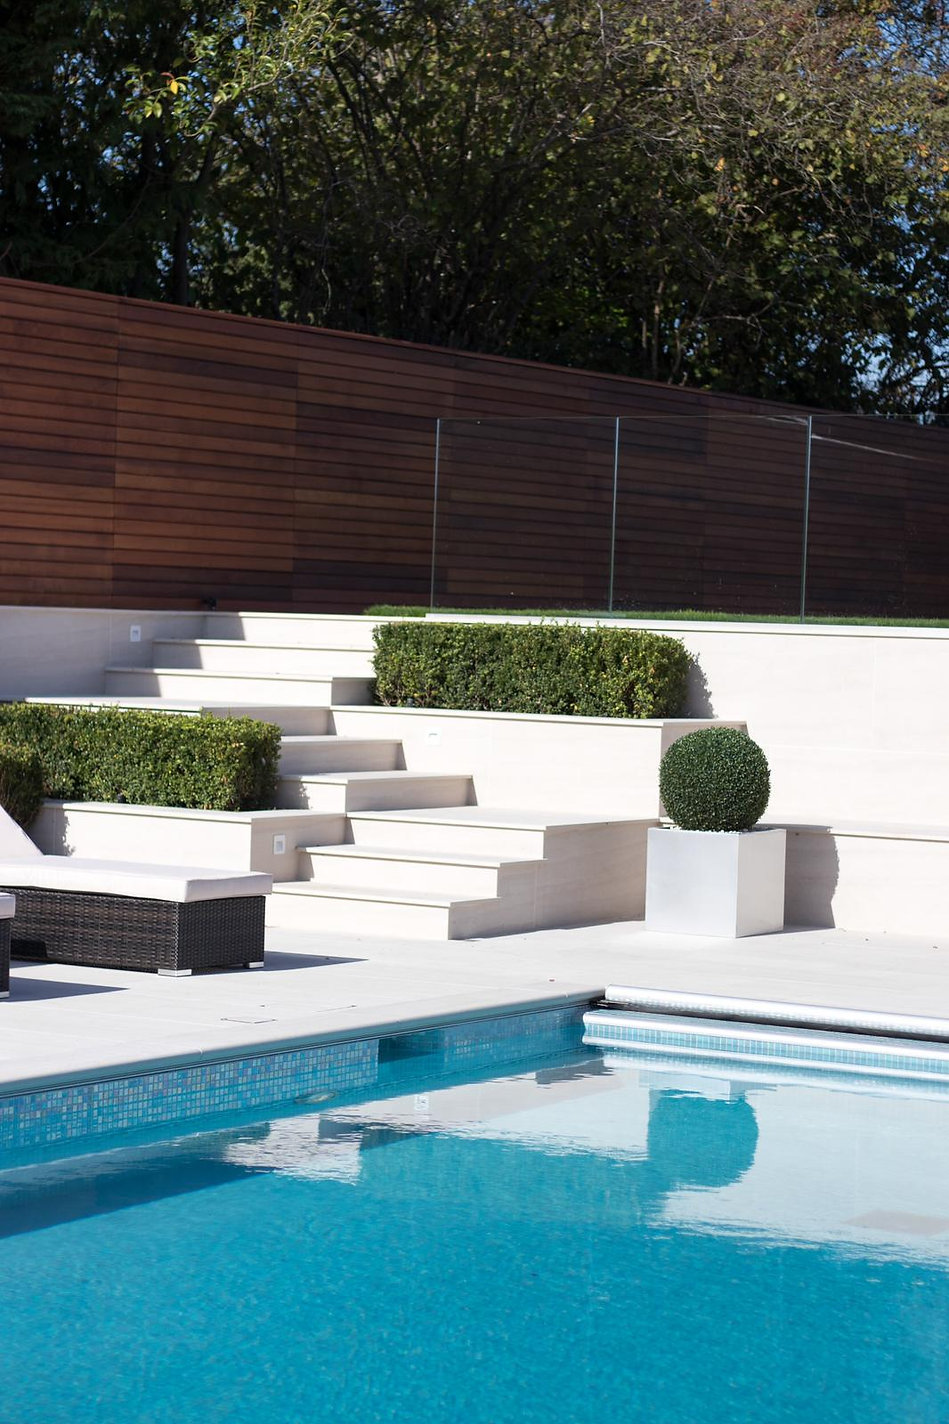 Flight of porcelain tiled steps leading from a swimming pool to a lawn